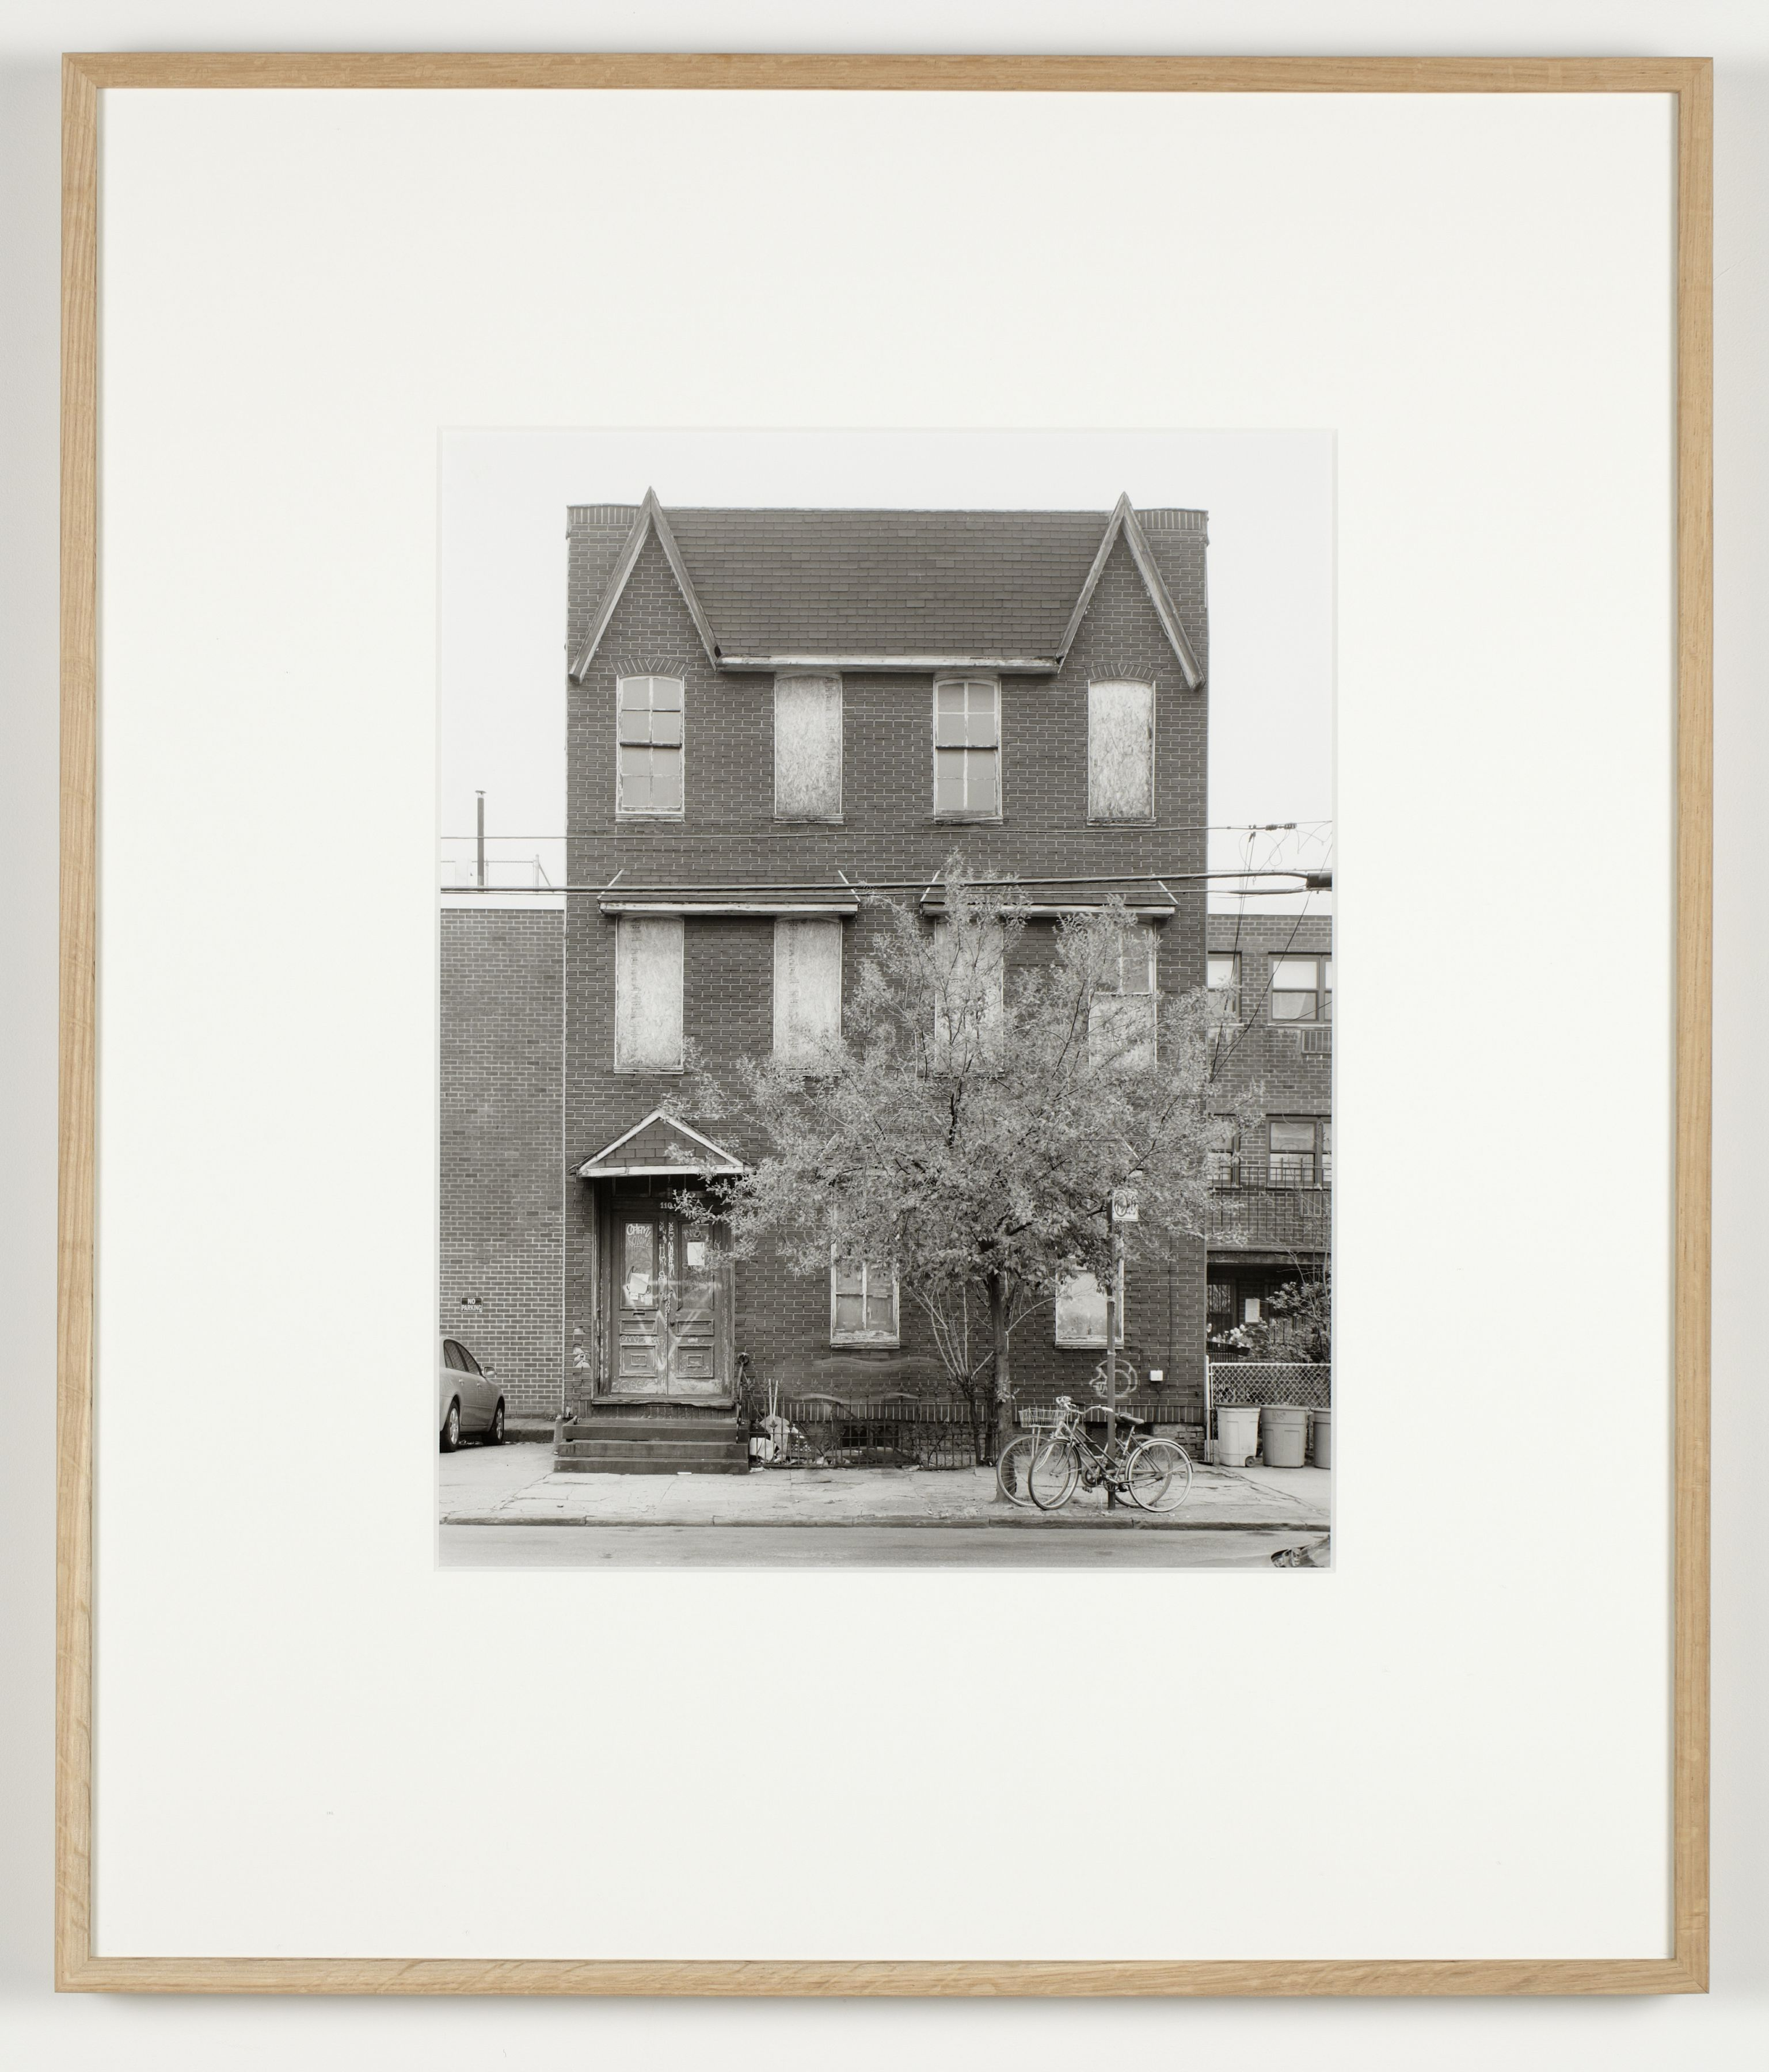 Joachim Koester, Some Boarded Up Houses, Brooklyn #1, 2009-2013, Silver gelatin print, 27 x 22 5/8 inches (68.6 x 57.5 cm)